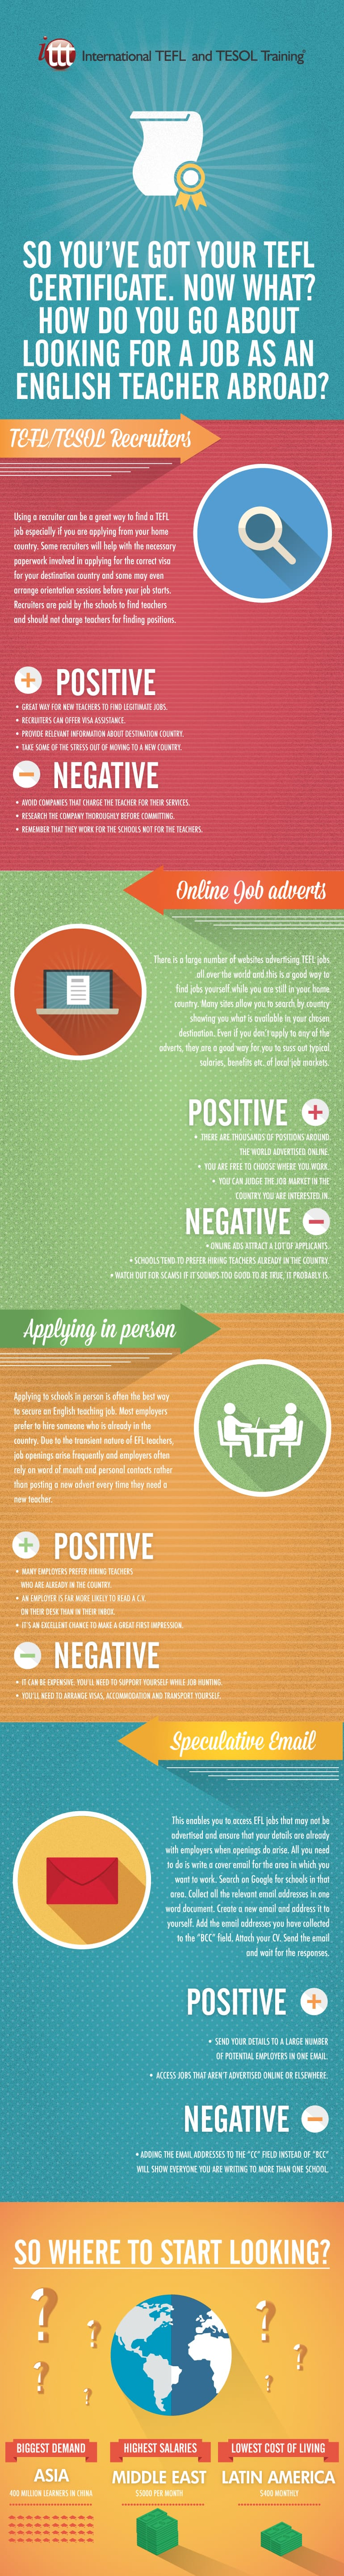 Infographic Find a job as an English Teacher